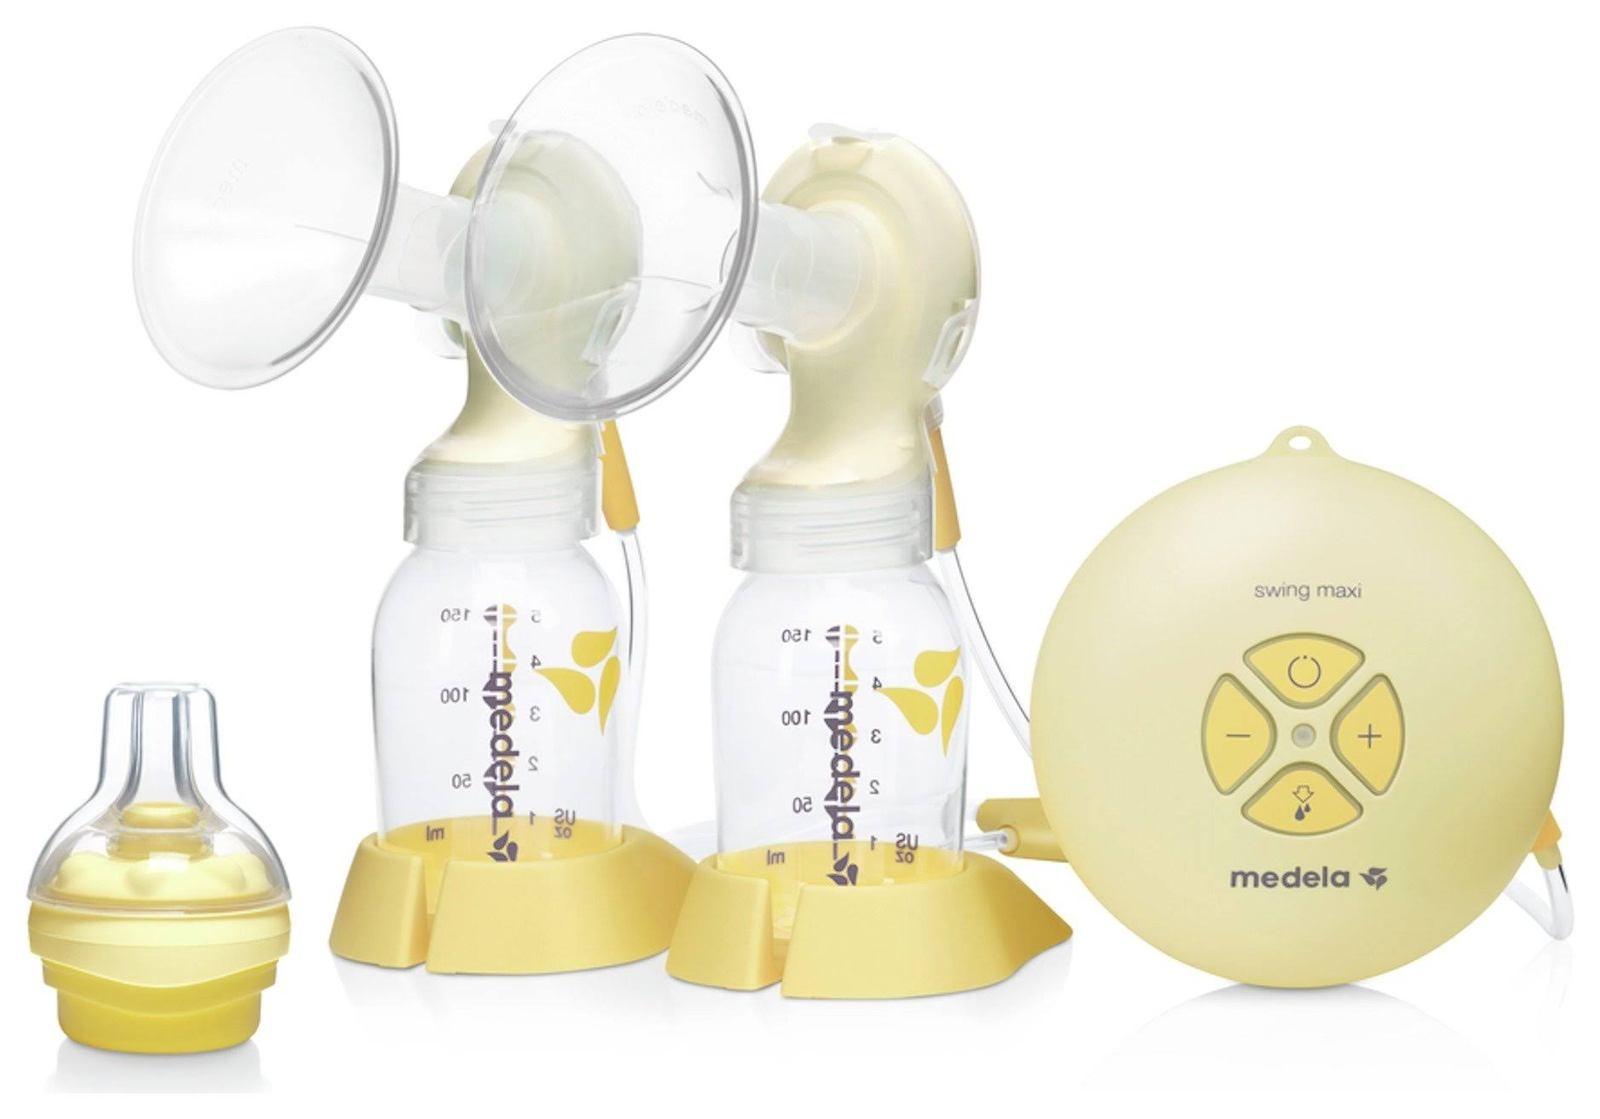 Medela Swing Maxi Double Electric Breast And 50 Similar Items